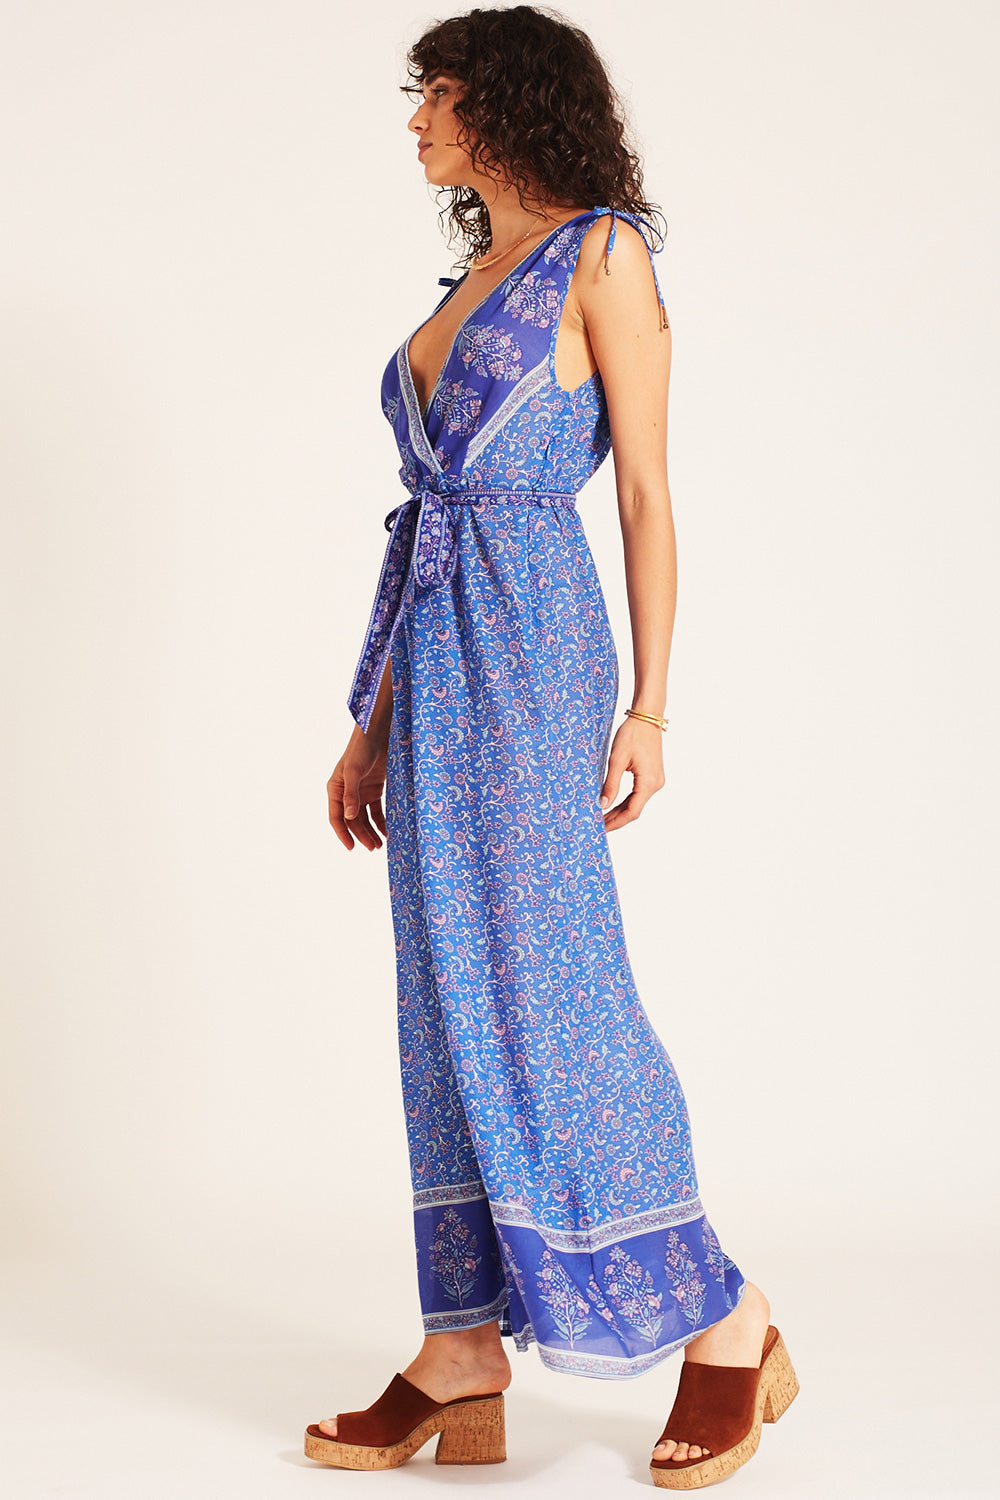 Wisteria Jumpsuit in Moonlight Blue